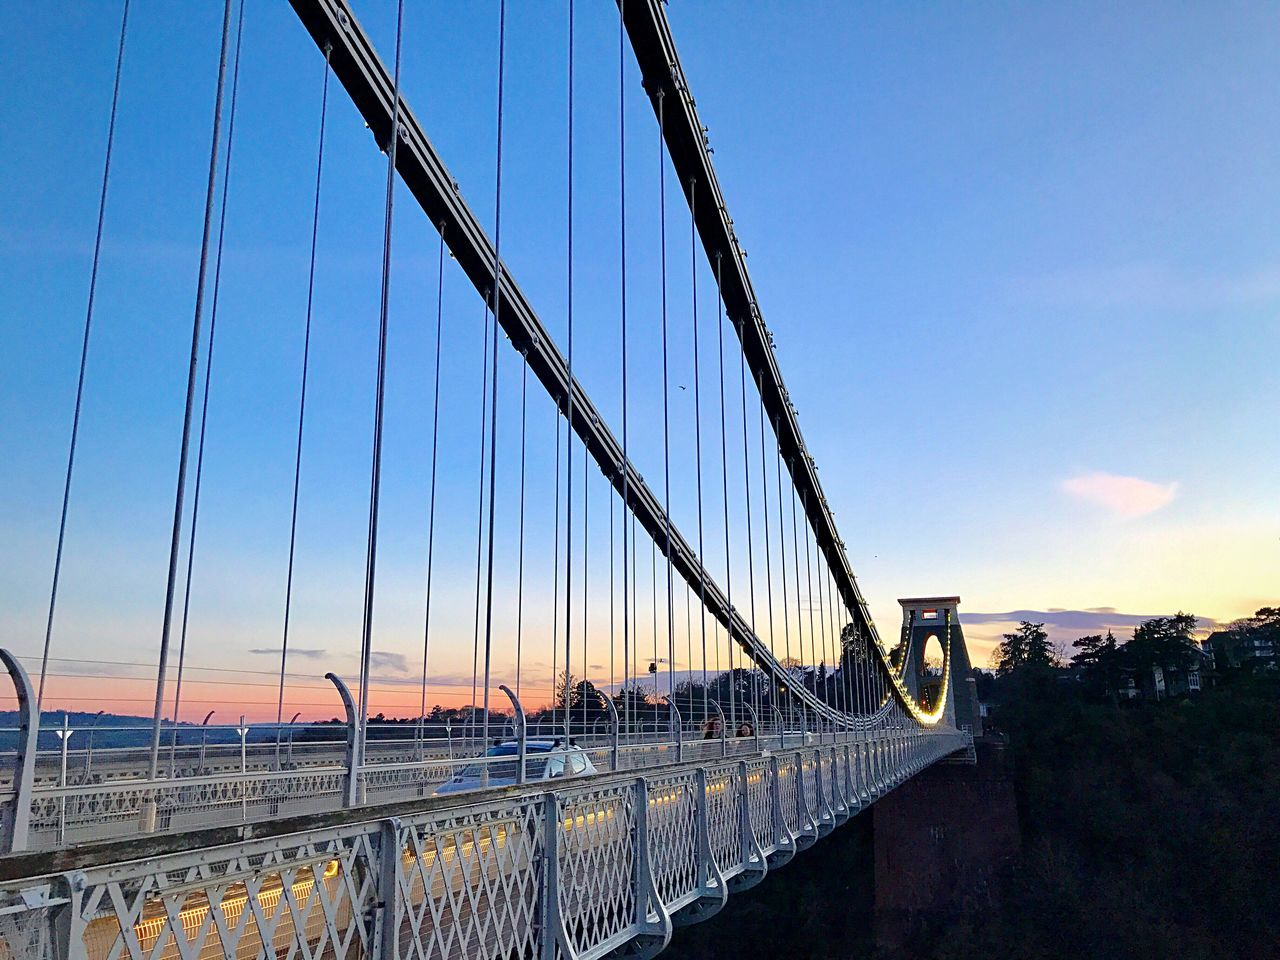 Connection Bridge - Man Made Structure Transportation Architecture Engineering Suspension Bridge Built Structure Sky Outdoors Cable-stayed Bridge Travel Destinations City Clear Sky Steel Cable Bridge Building Exterior Sunset No People Day